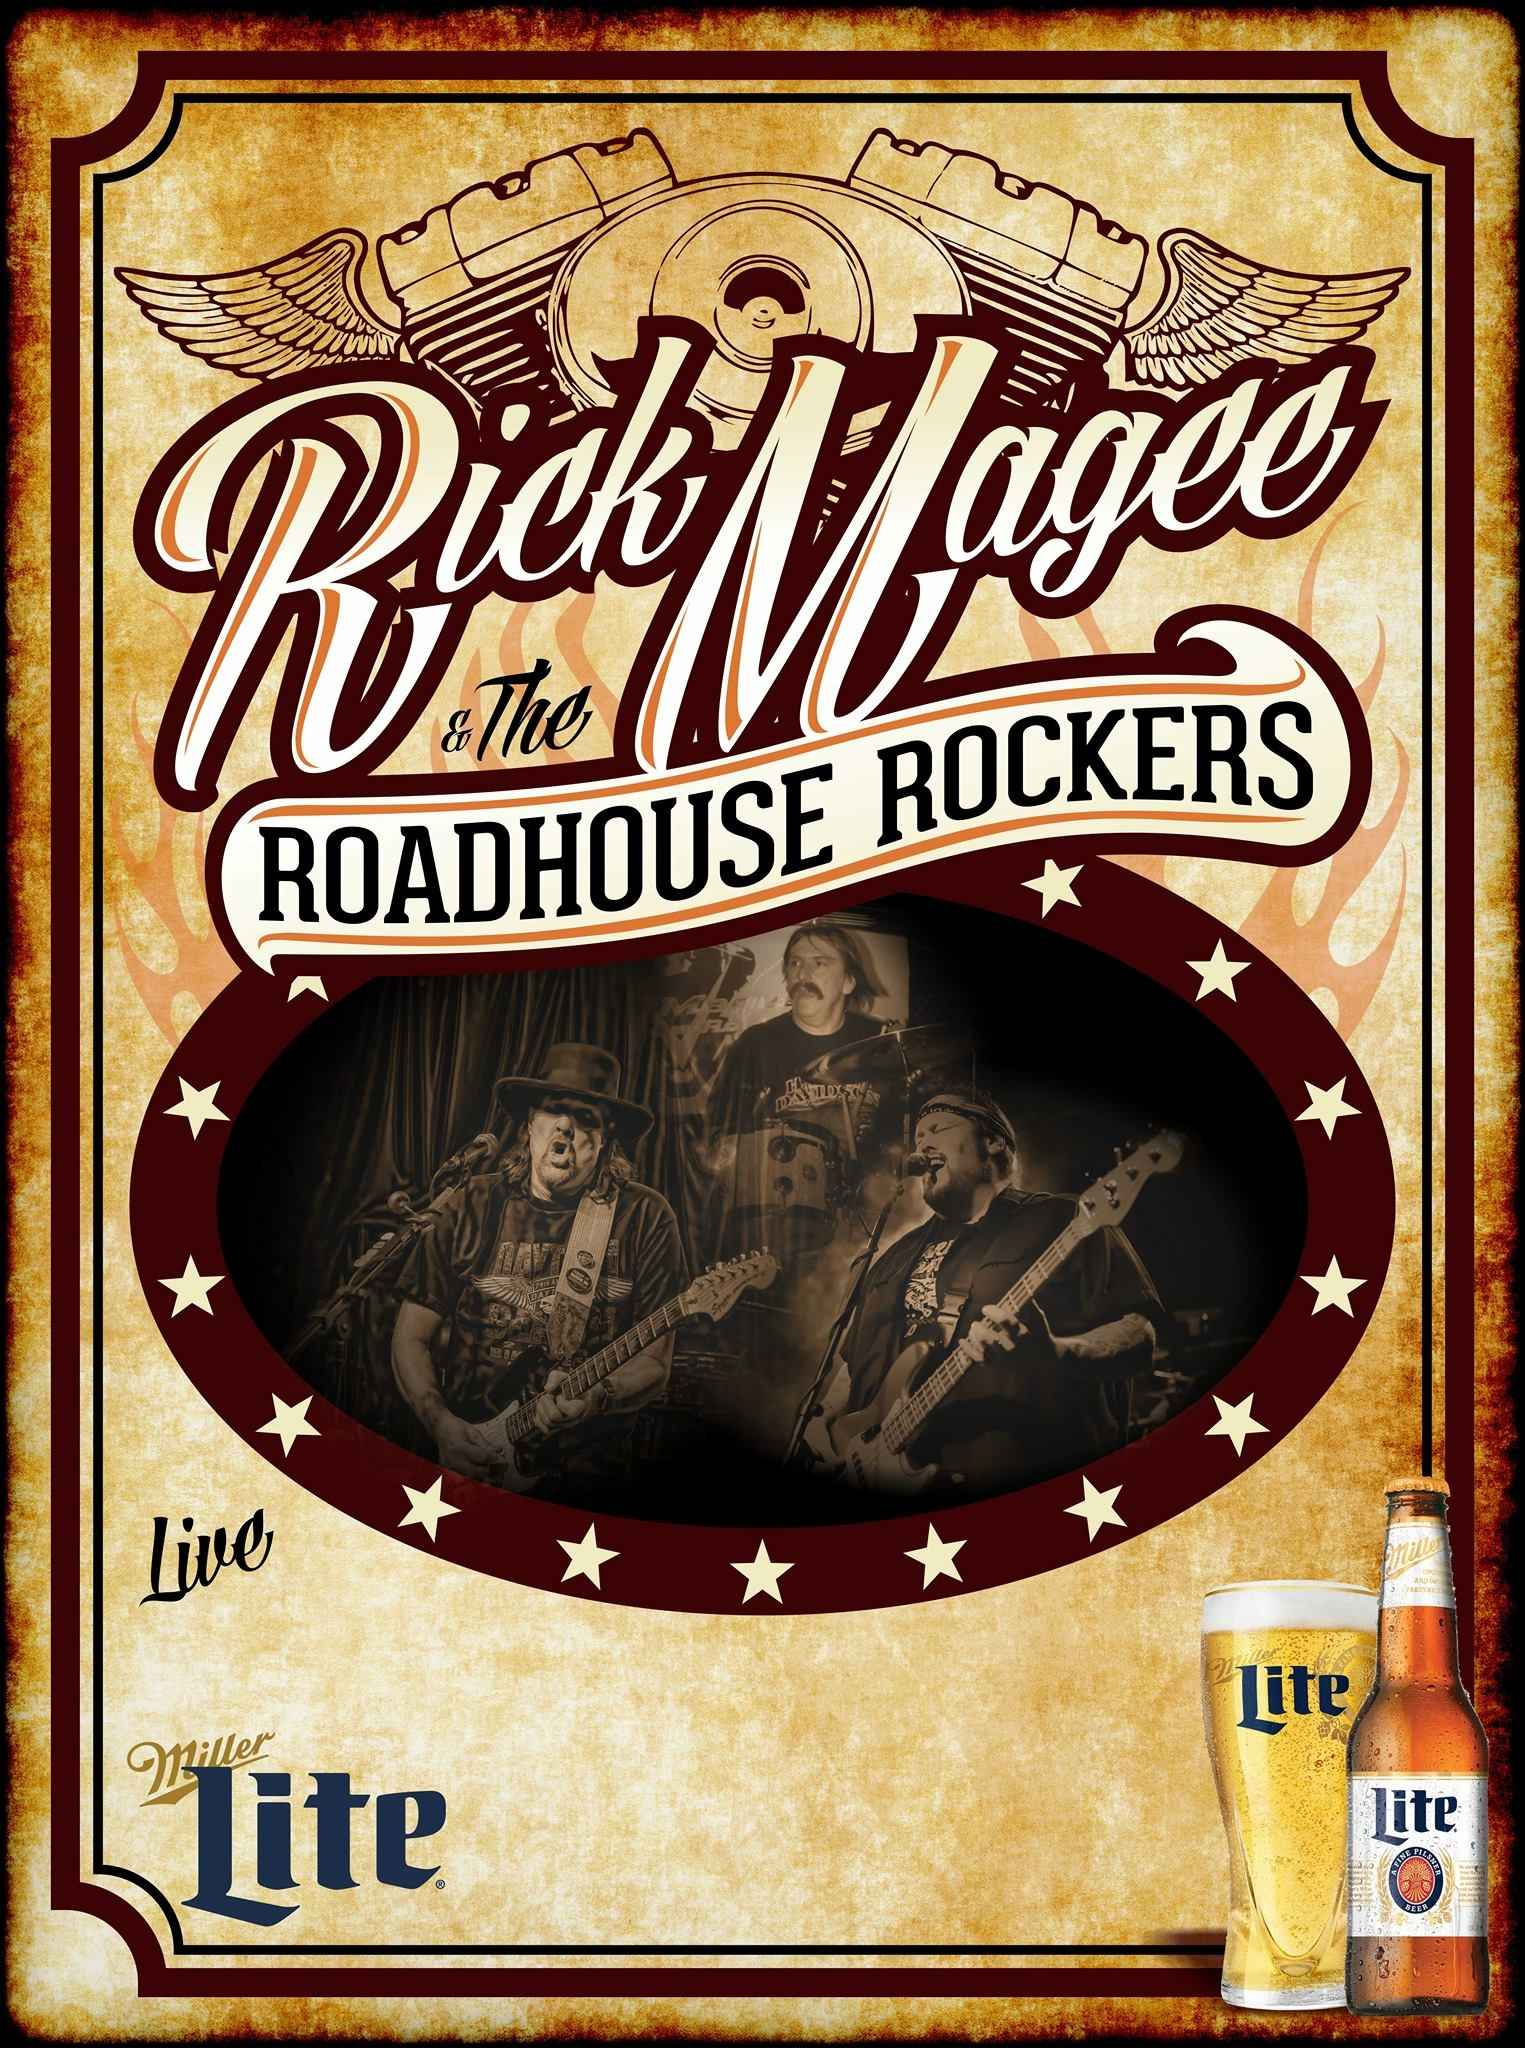 For over a decade the Roadhouse Rockers have been touring the US at many Bike Rallies, Rib Fests, Concerts and clubs.  They have 5 Cd's that have sold though out the US and over seas.  Rick was also a top finalist in the Jimi Hendrix guitar competition.   For more info check out:   www.roadhouserockers.com